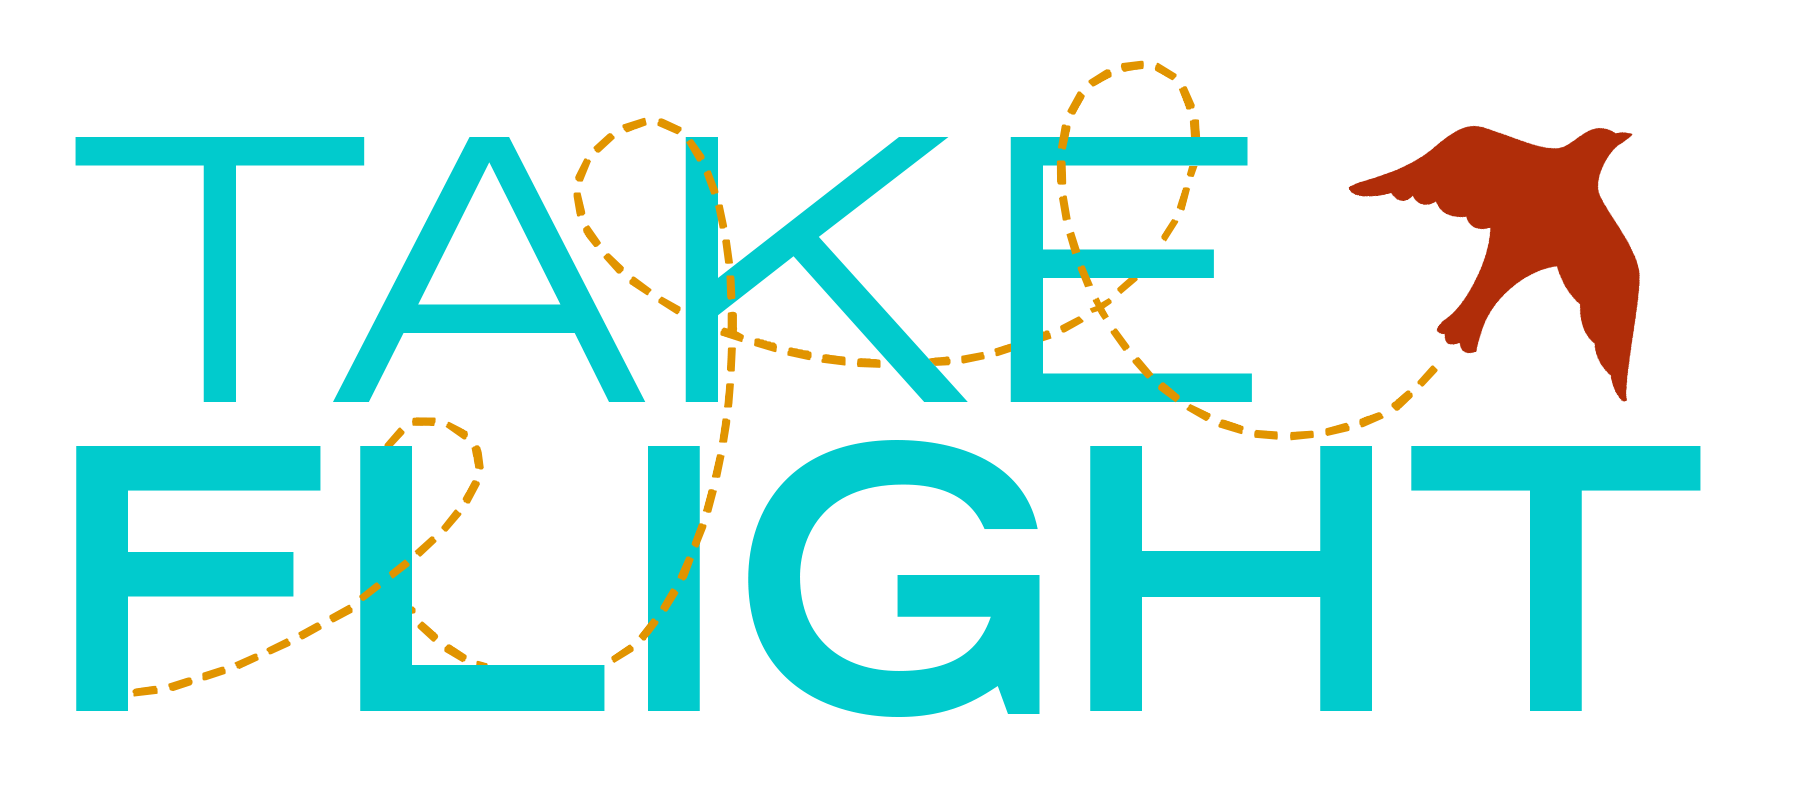 """RAVEN THEATER - Raven Theatre's Take Flight program has been my artistic home as a teaching artist in Chicago. Their chanted mission is something I hold near and dear to my heart:""""WITH COURAGE, I WILL CONNECT + COLLABORATE + CREATE IN MY COMMUNITY""""-Take Flight, Raven Theater"""